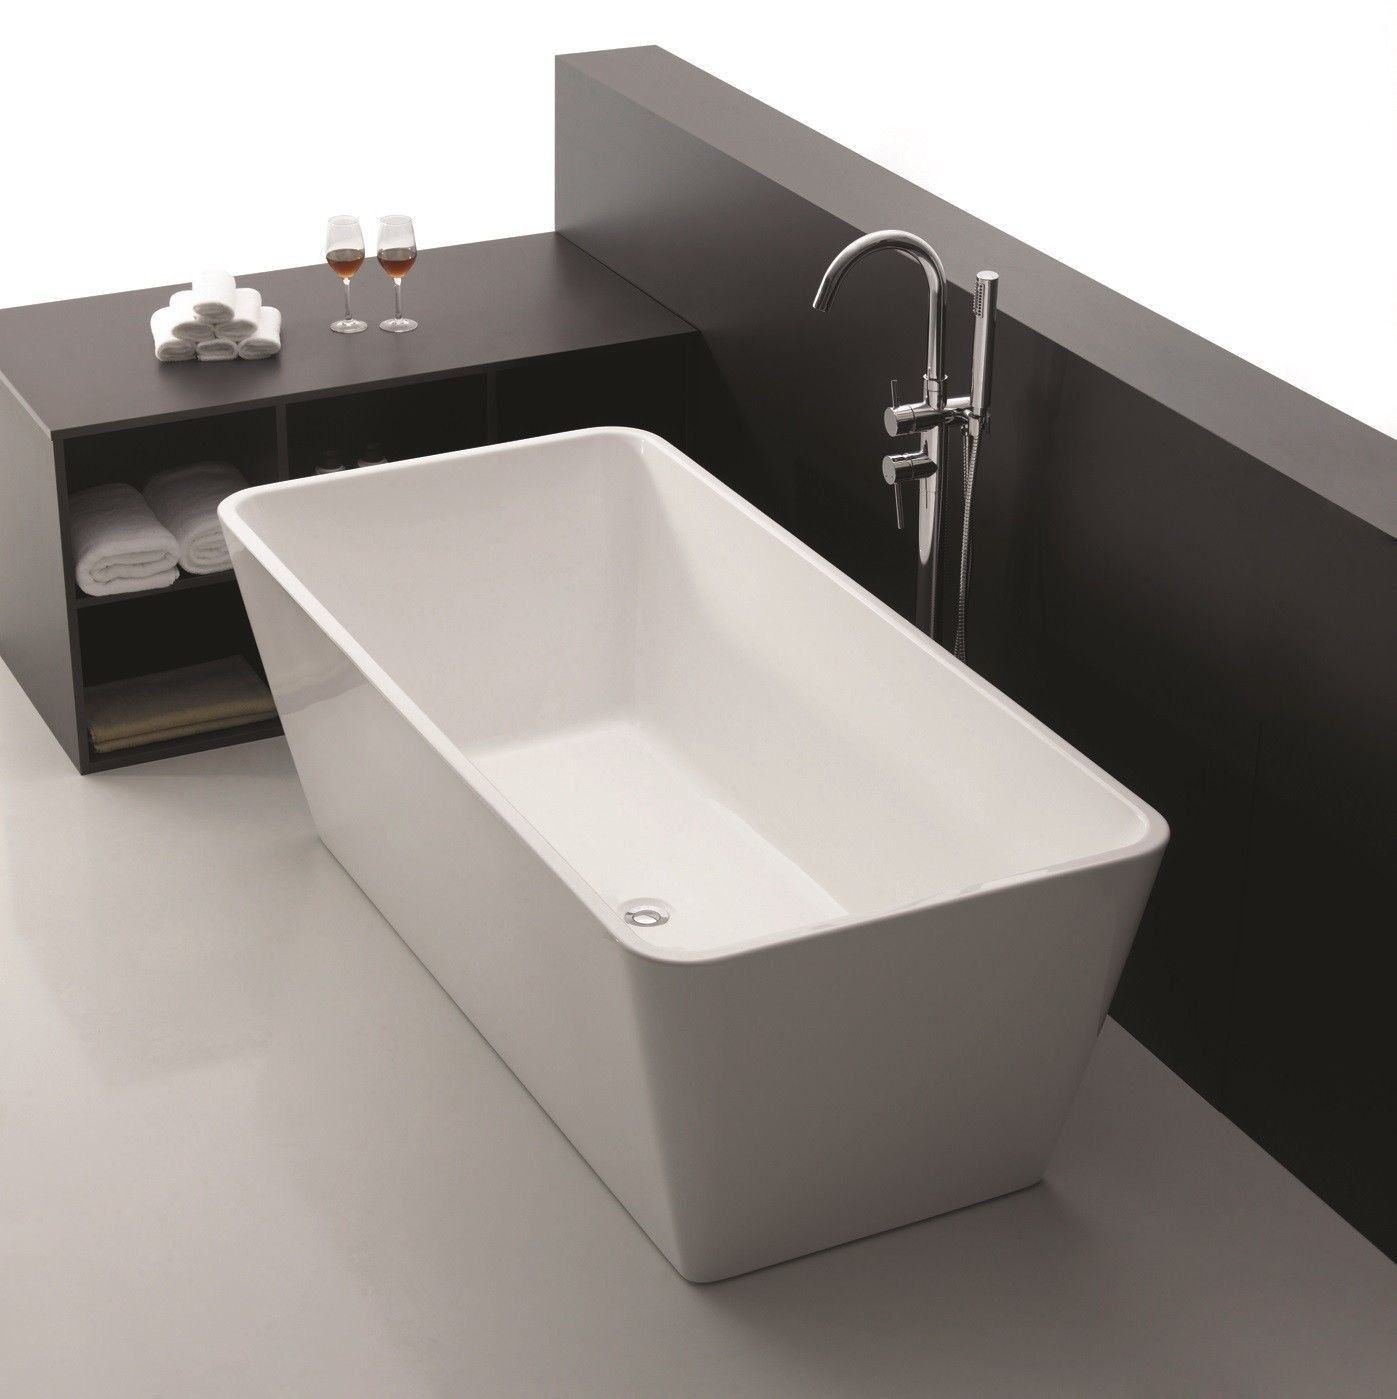 Square Tub Elouera  Square Freestanding Lucite®Acrylic Bath Tub  1400Mm